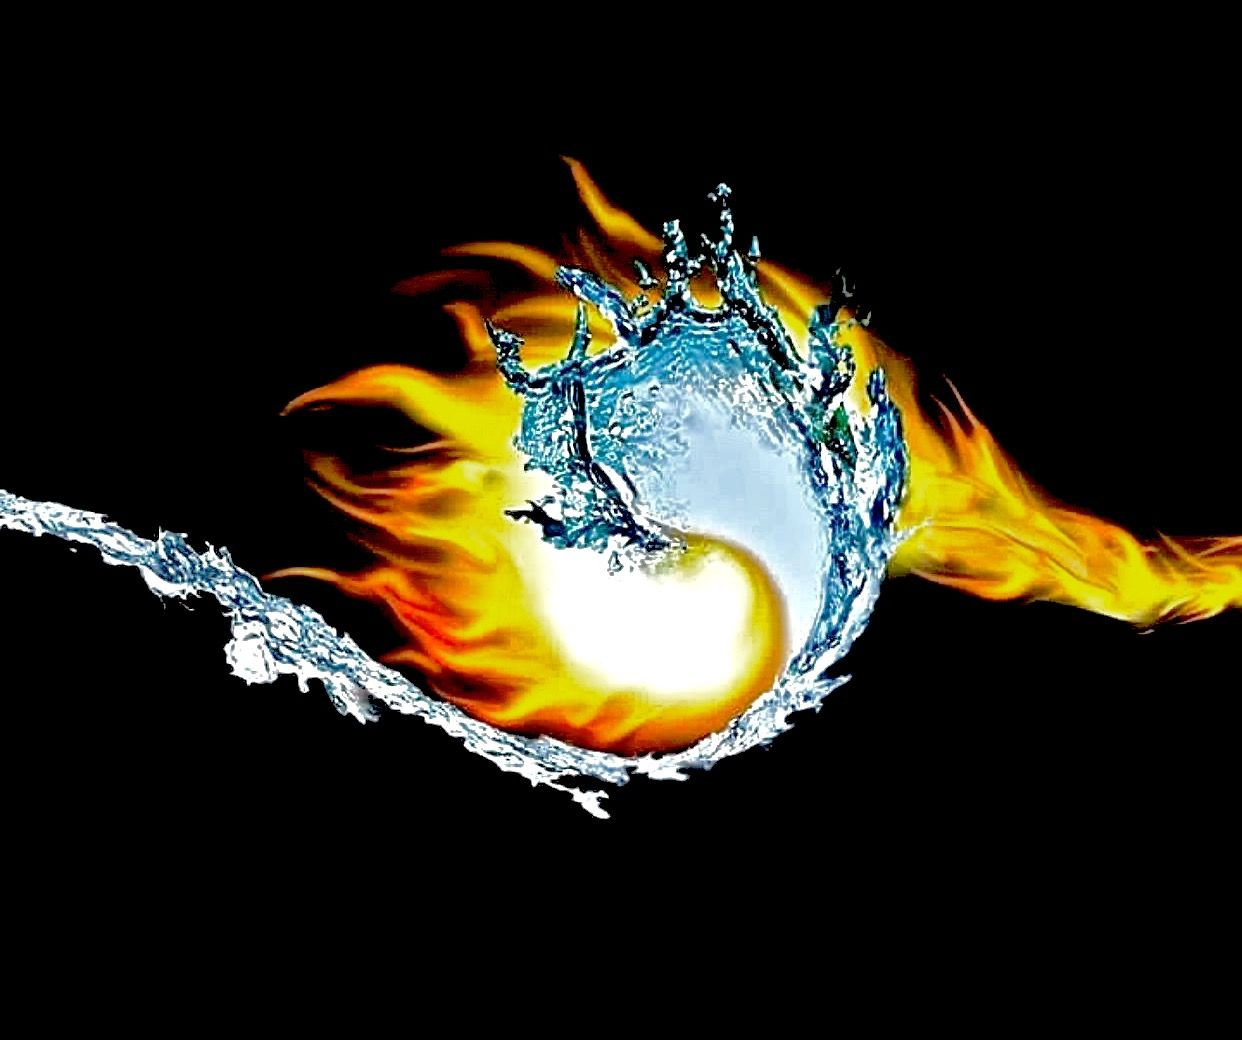 Yin Yang A Fire Water Composition Where The Two Elements Are Illustrated Beyond The Typical Shape Lines Yet T Yin Yang Tattoos Ying Yang Tattoo Yin Yang Art